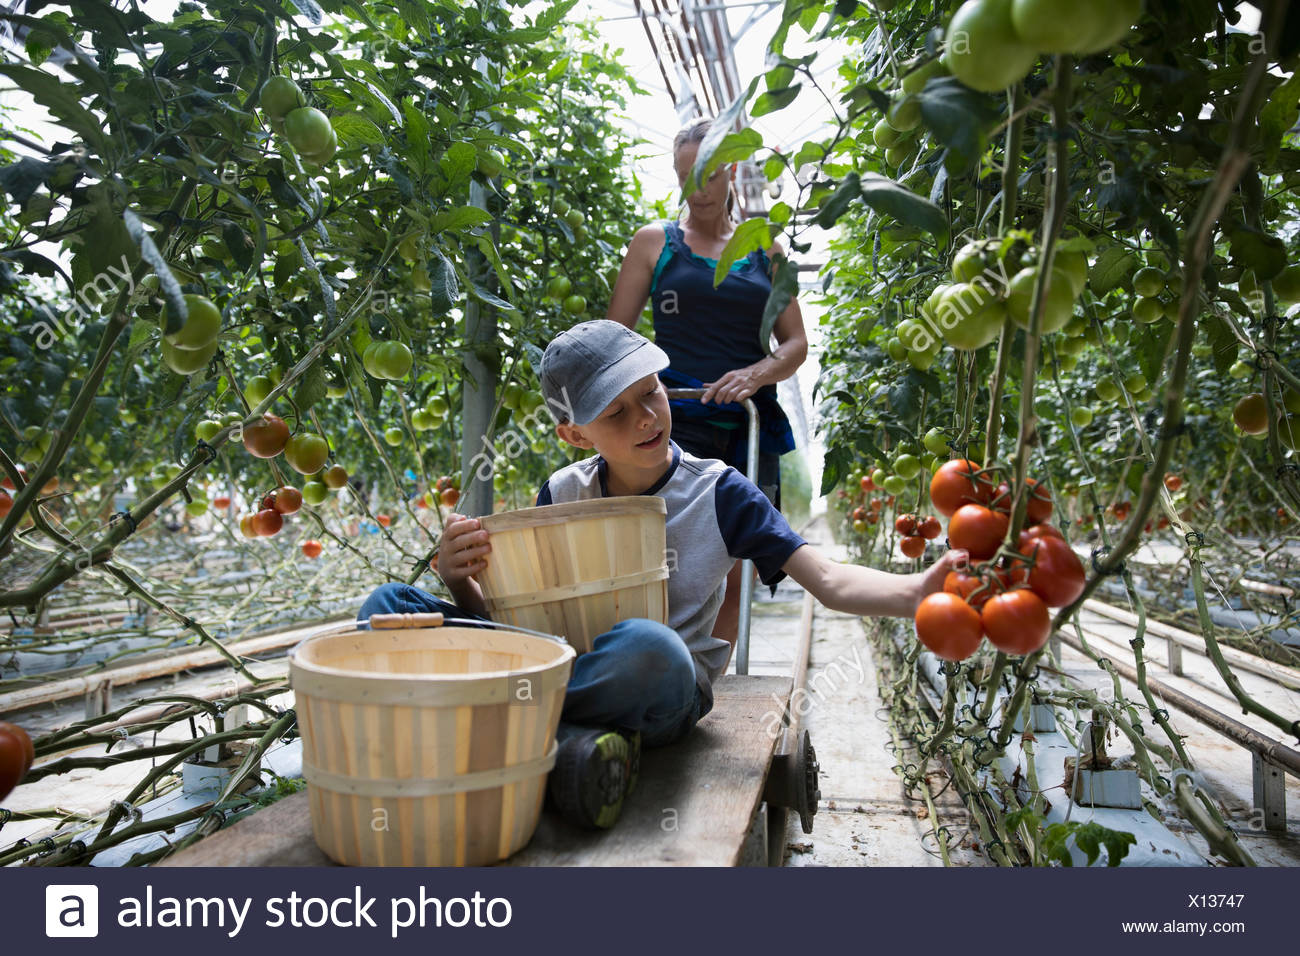 Boy with bushels harvesting tomatoes growing on tomato plant in greenhouse - Stock Image